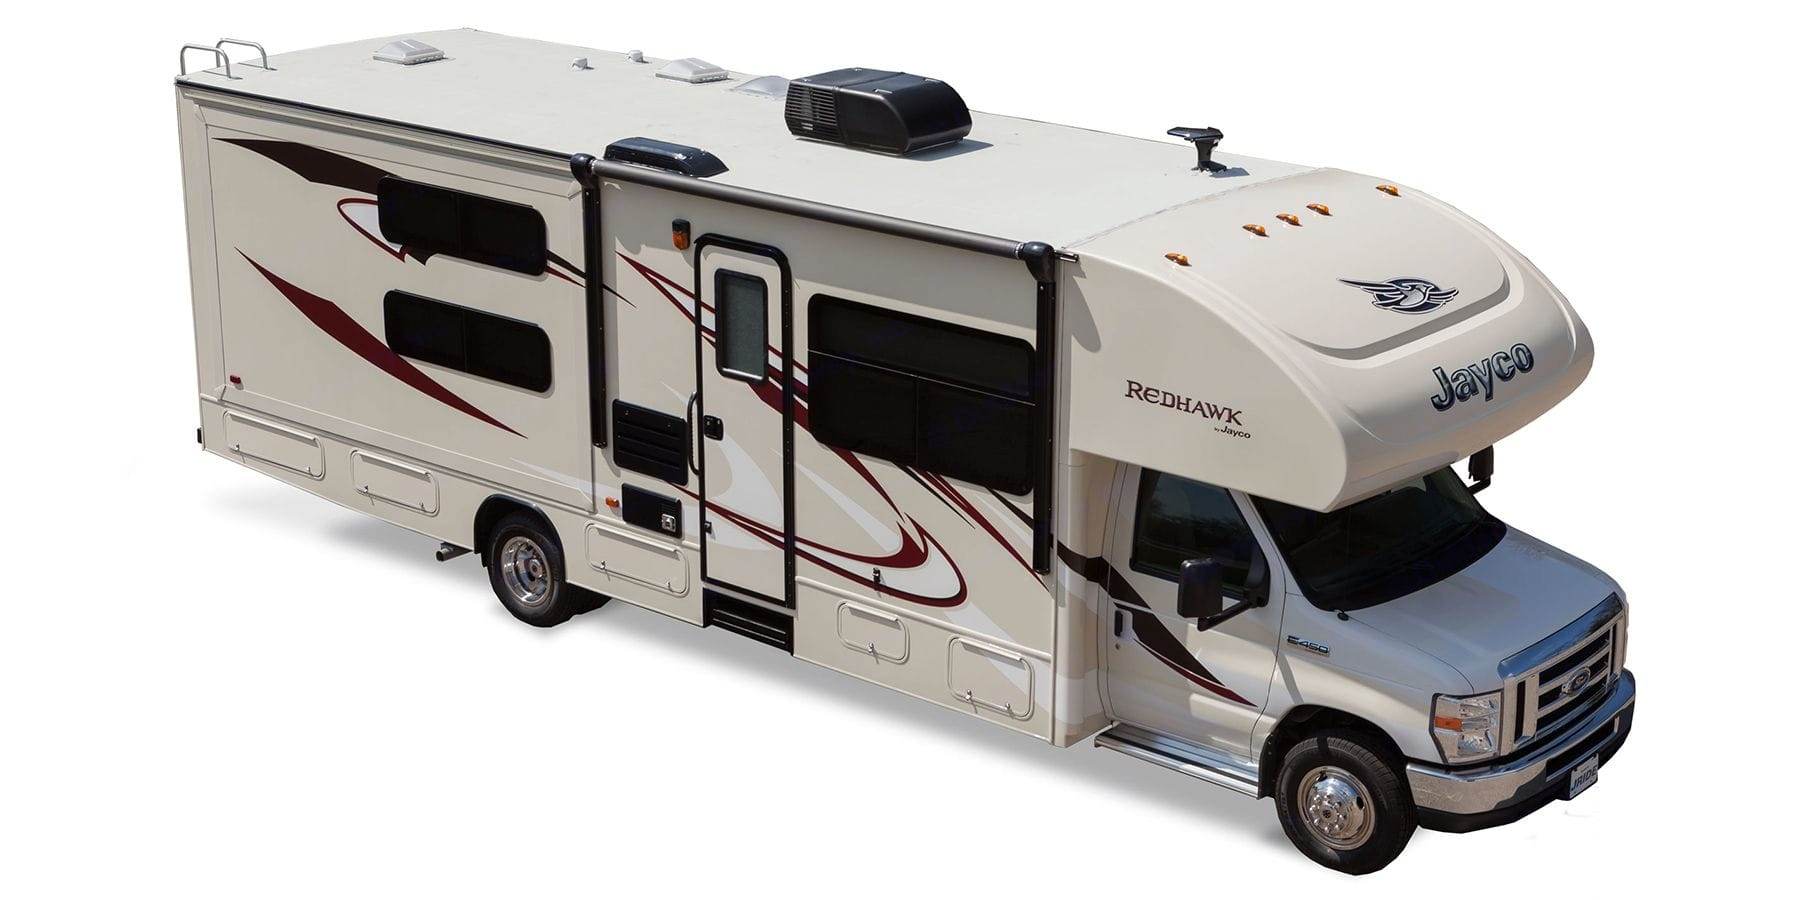 Our RV has a second air conditioner in place of the skylight or what we call a night zone providing white noise and temperatures to 65F. Jayco Redhawk 2016